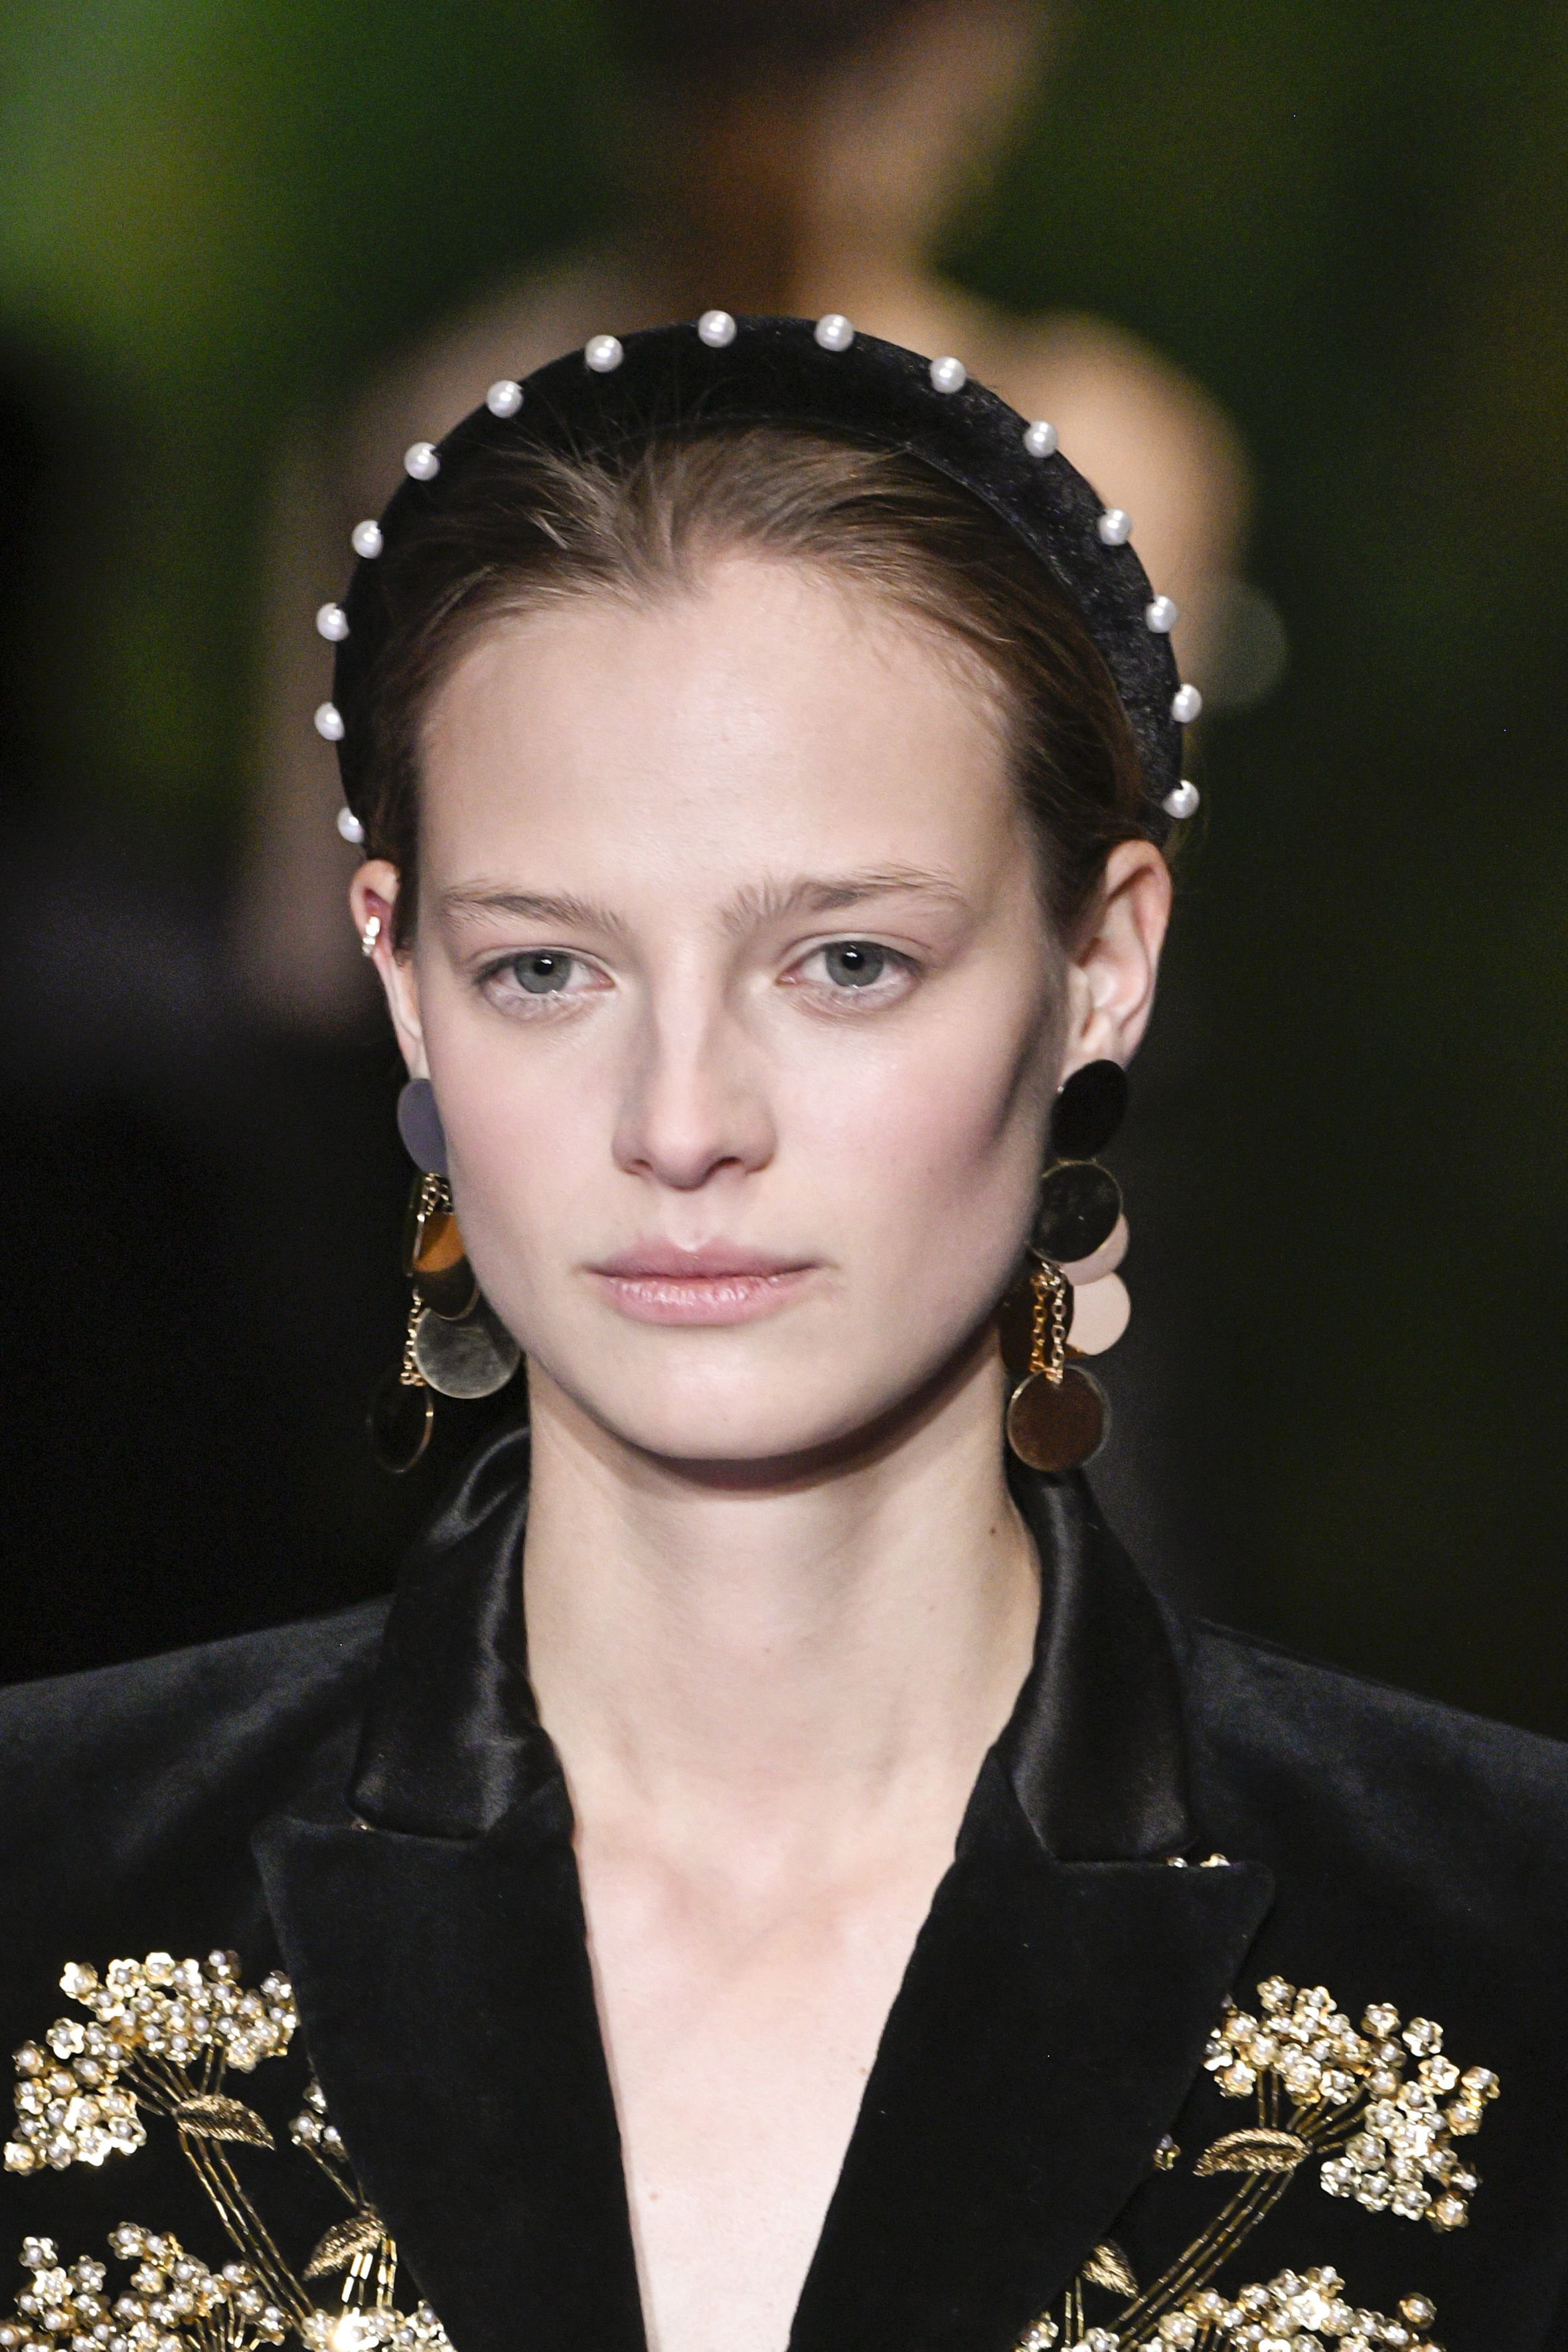 <p>With some top notes of Vermeer. A large contingent of commenters ran screaming from the '80s-ness of it all, but we think with the right, smart outfit, and those earrings, a pearl headband could be really elegant.   </p>